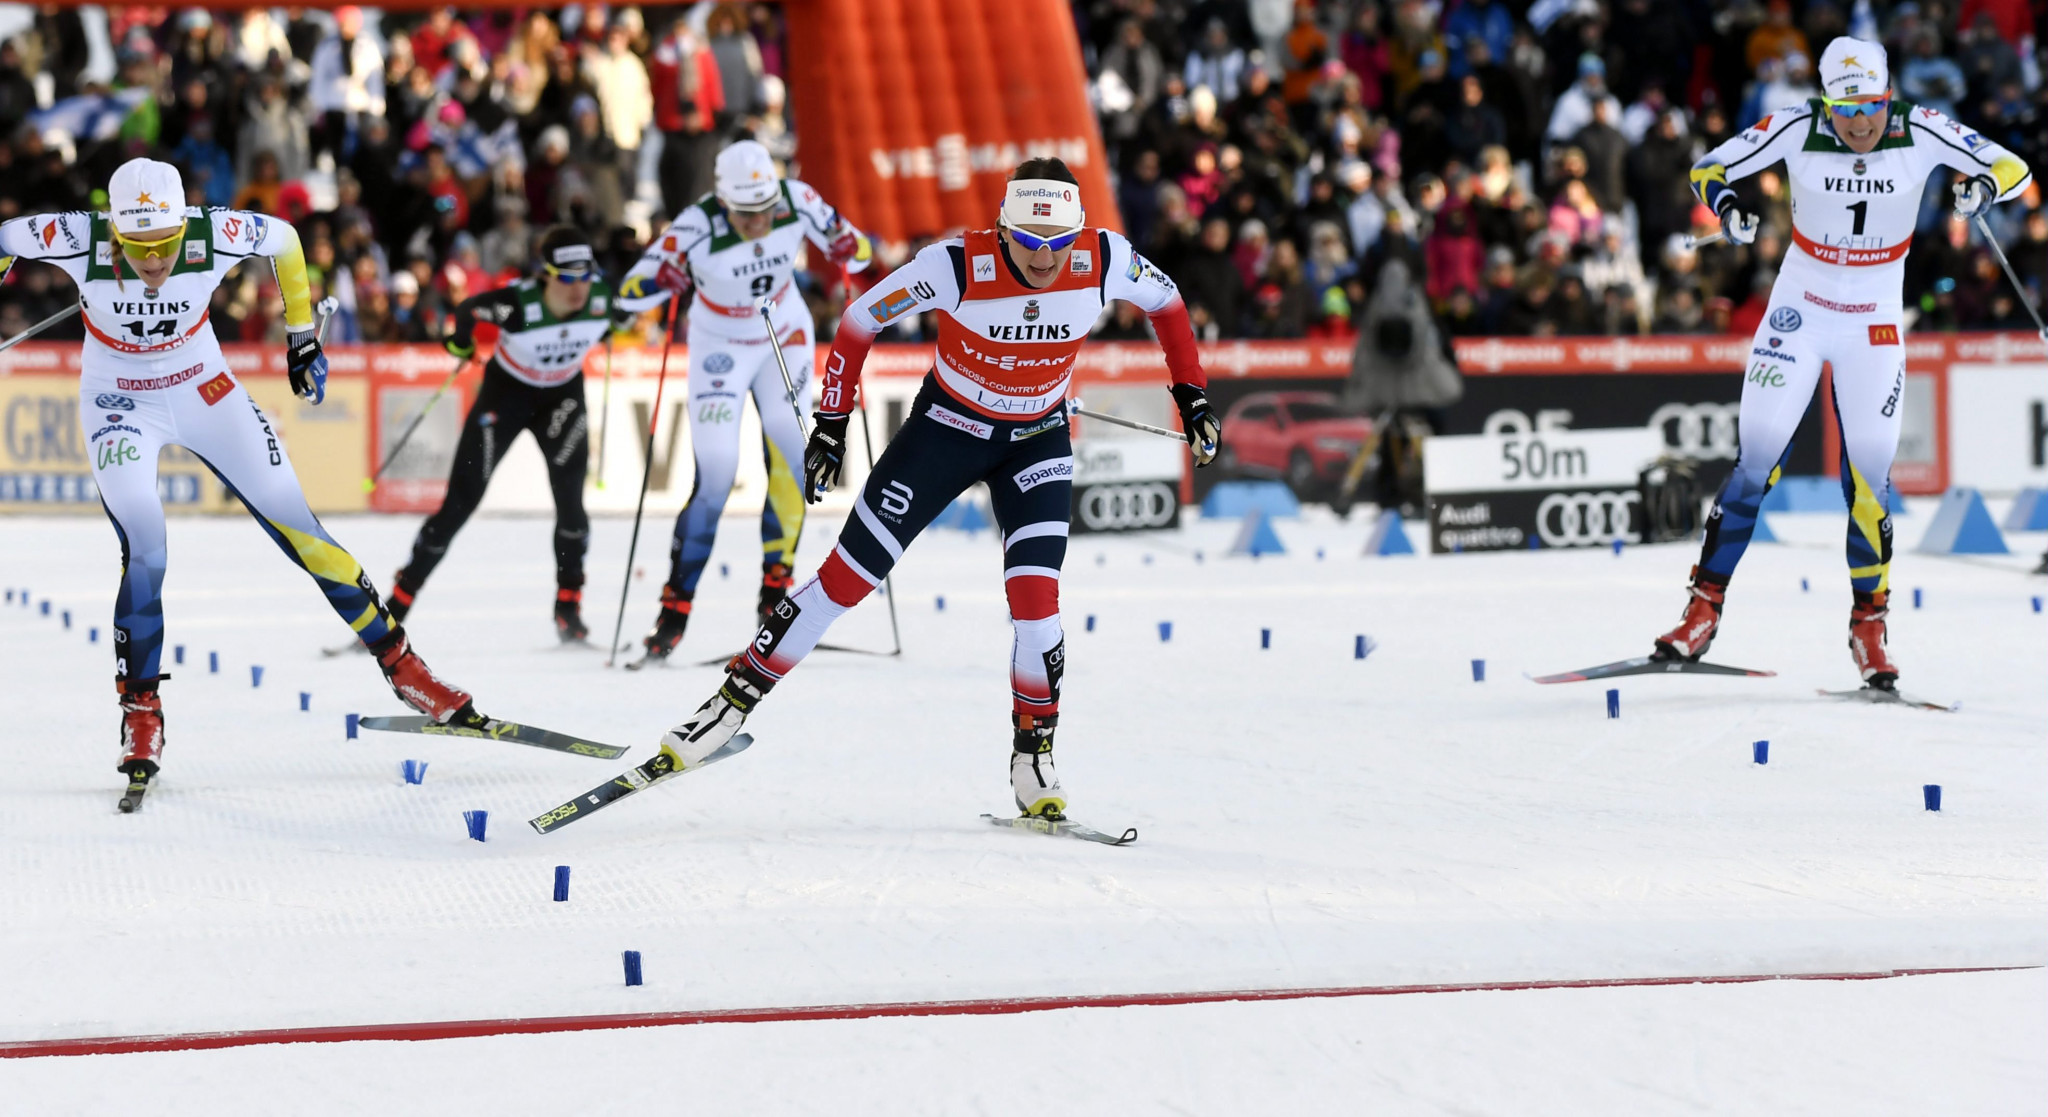 Falla aims to clinch overall sprint title on home snow at FIS Cross-Country World Cup in Drammen